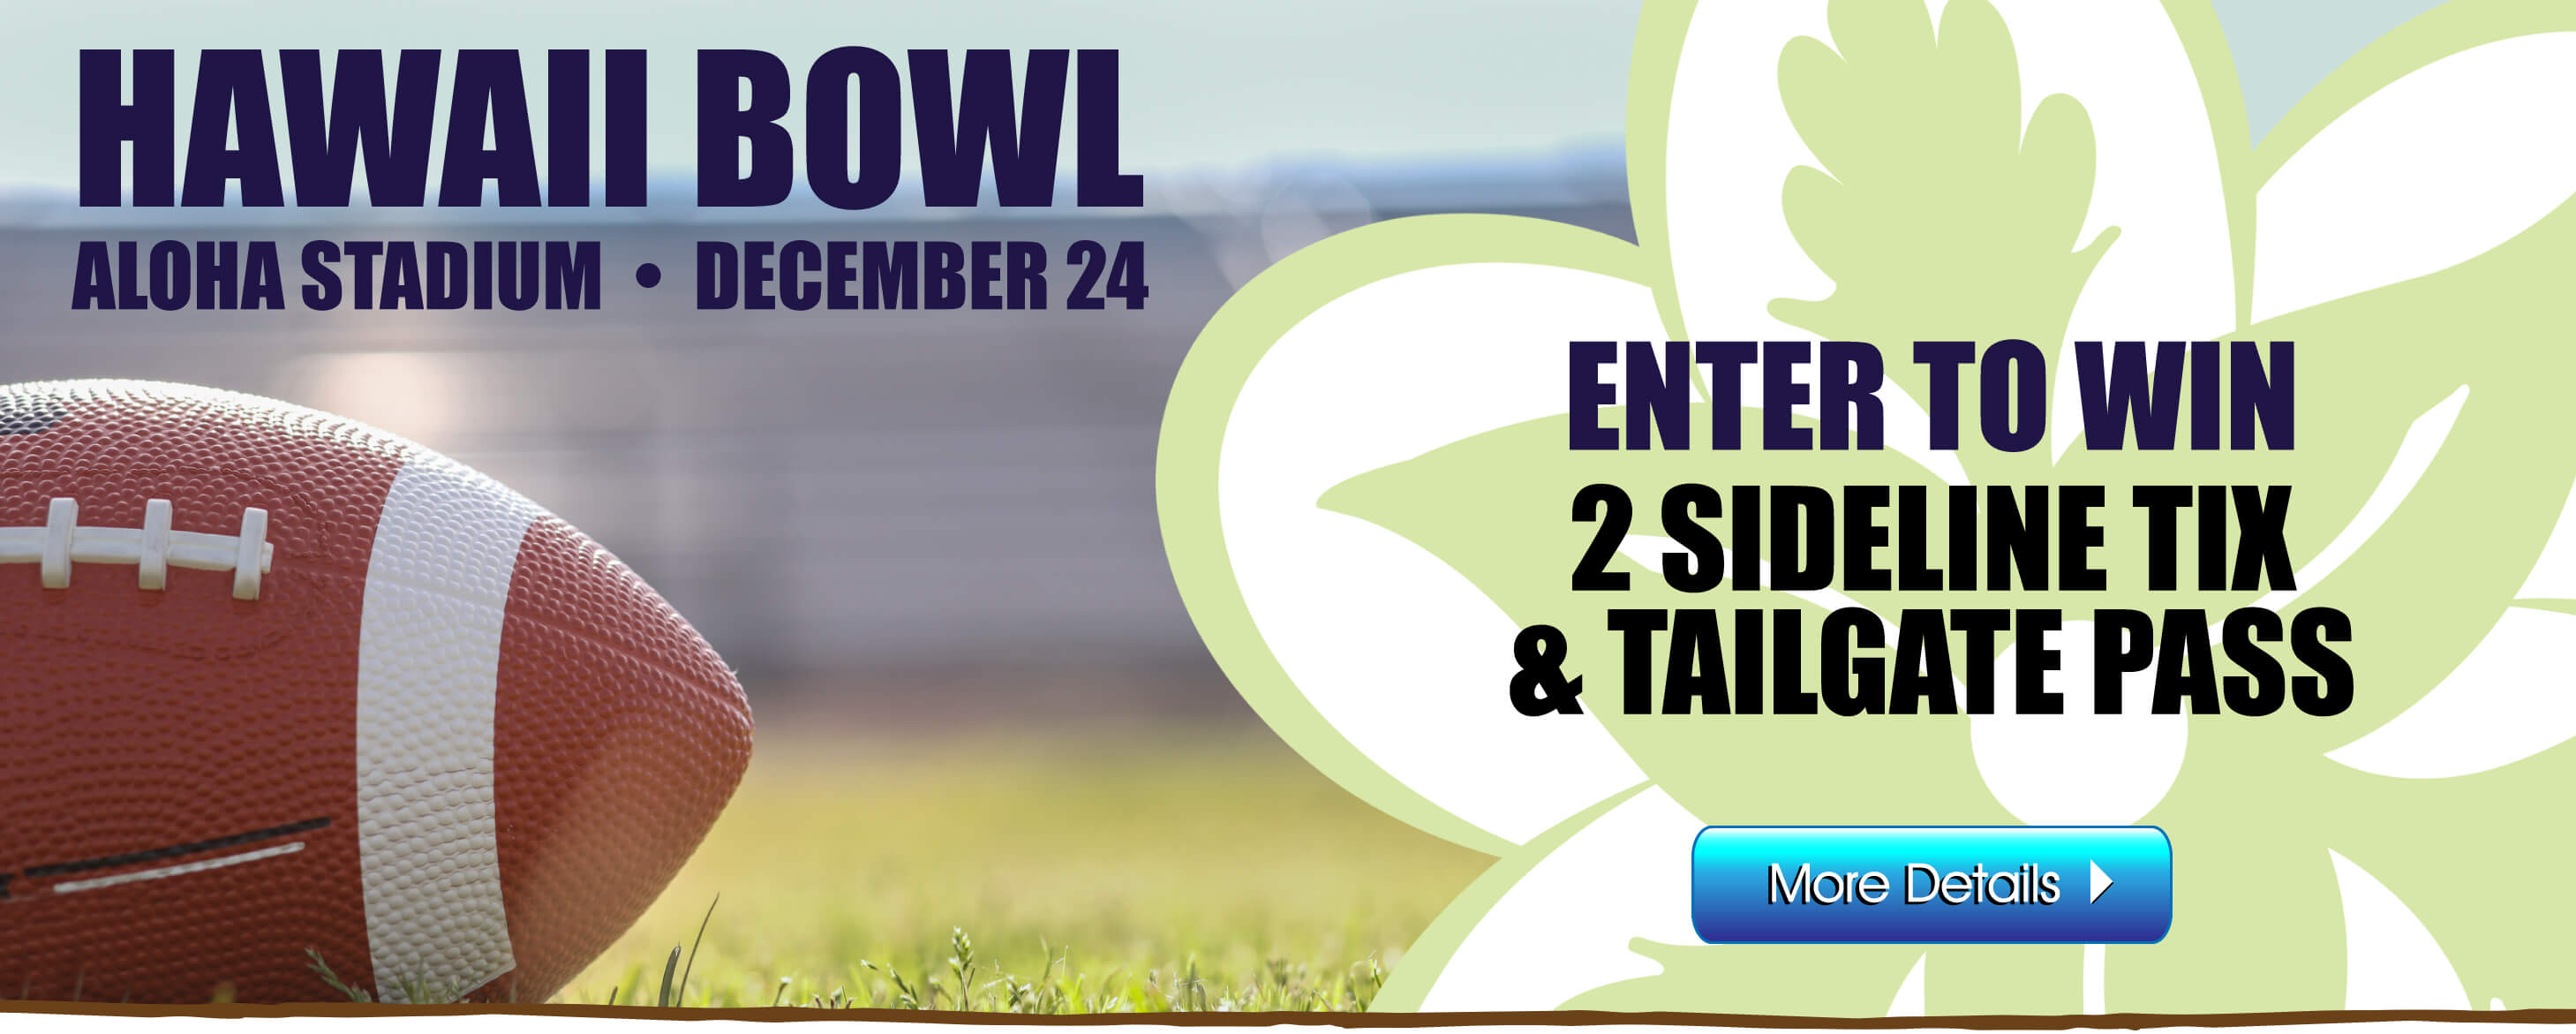 Enter to Win 2 sideline tix and tailgate party pass to the HAWAII BOWL